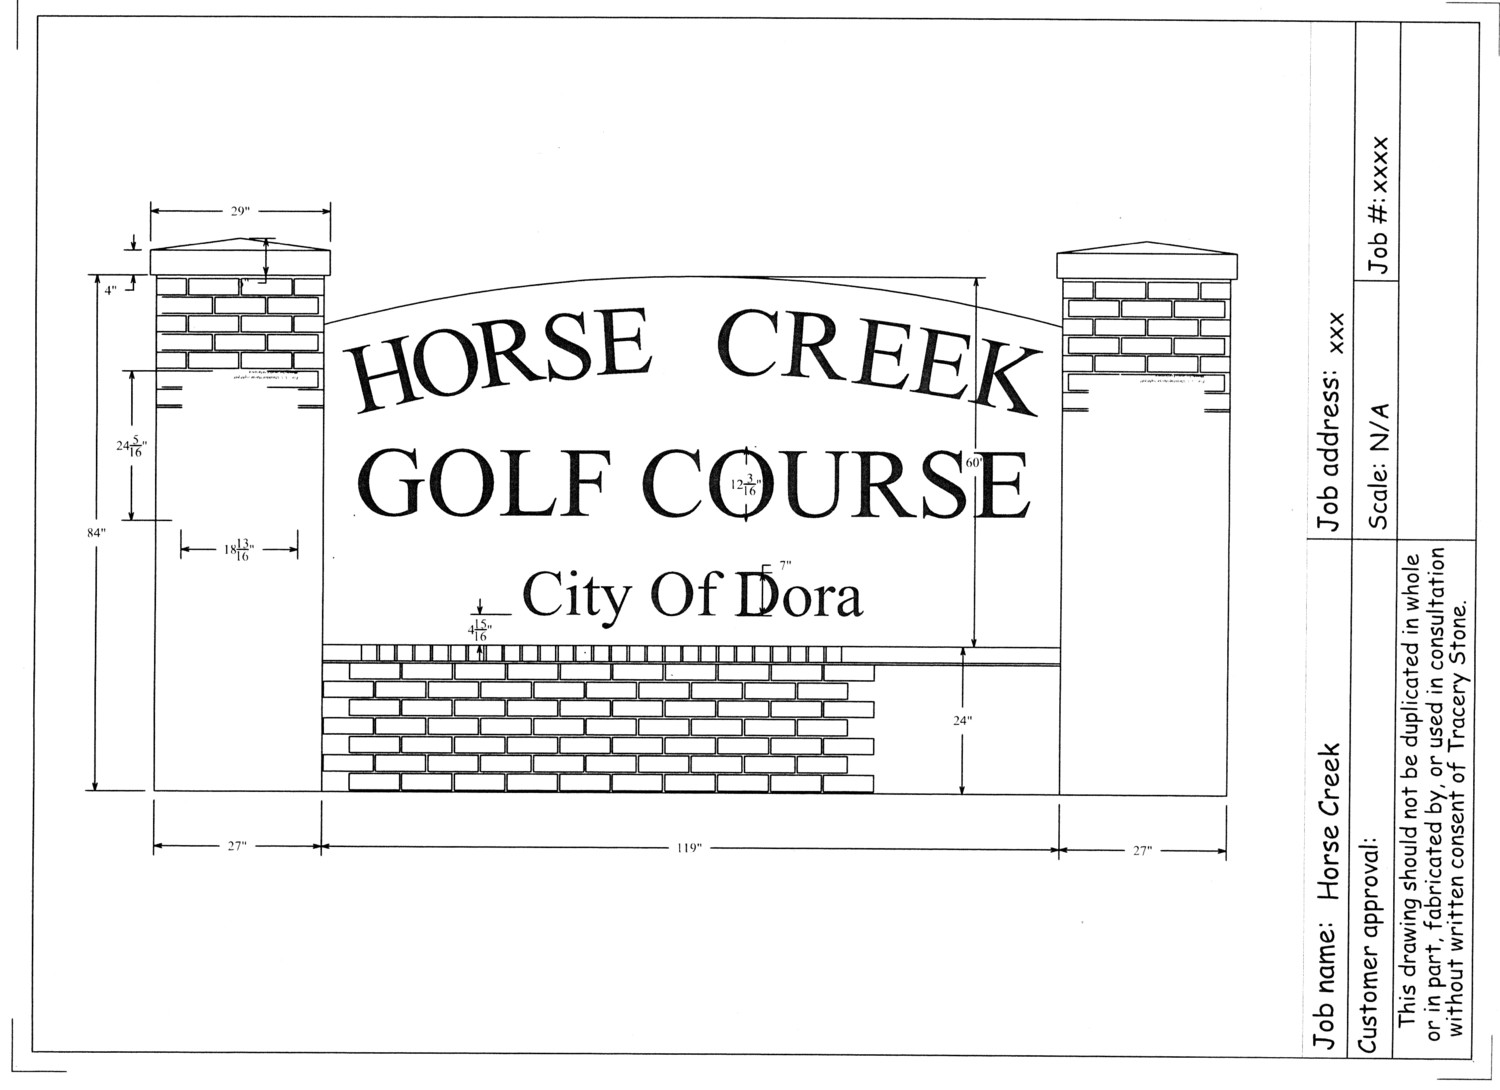 This is a rendering of the new sign for Horse Creek Golf Course.